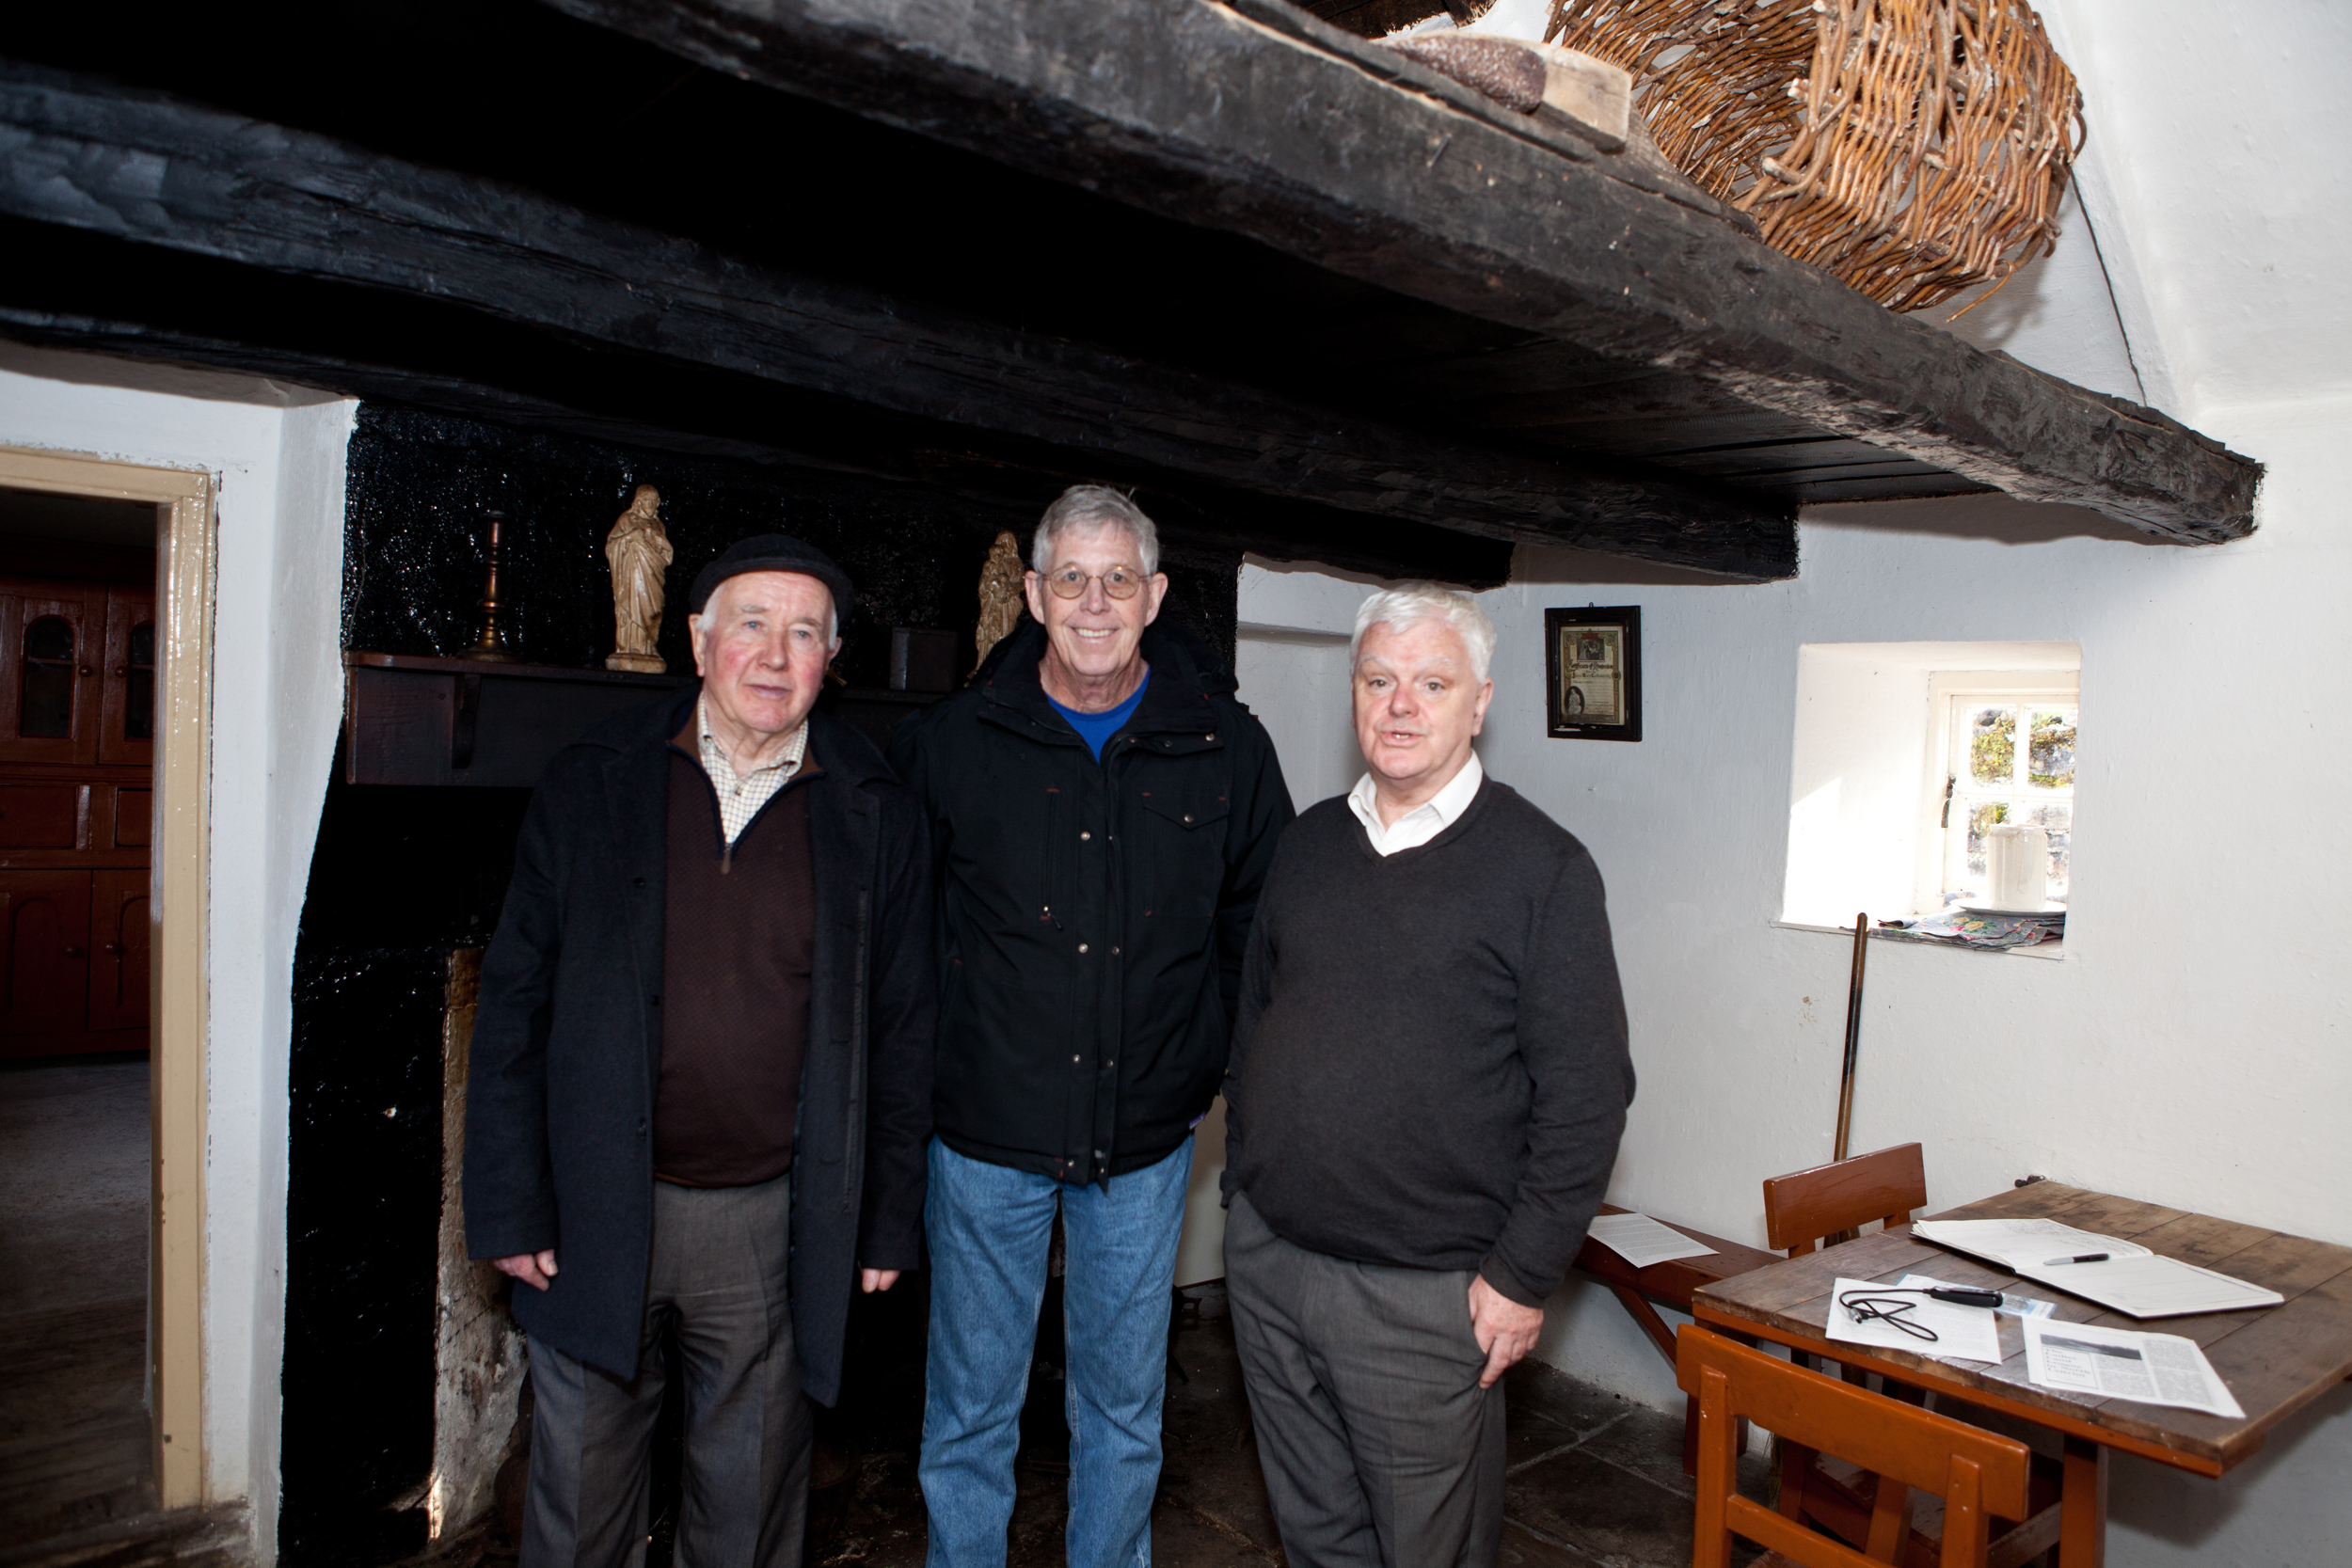 Hubert McMorrow, Steve McMorrow and Fr Gerry Comeskey